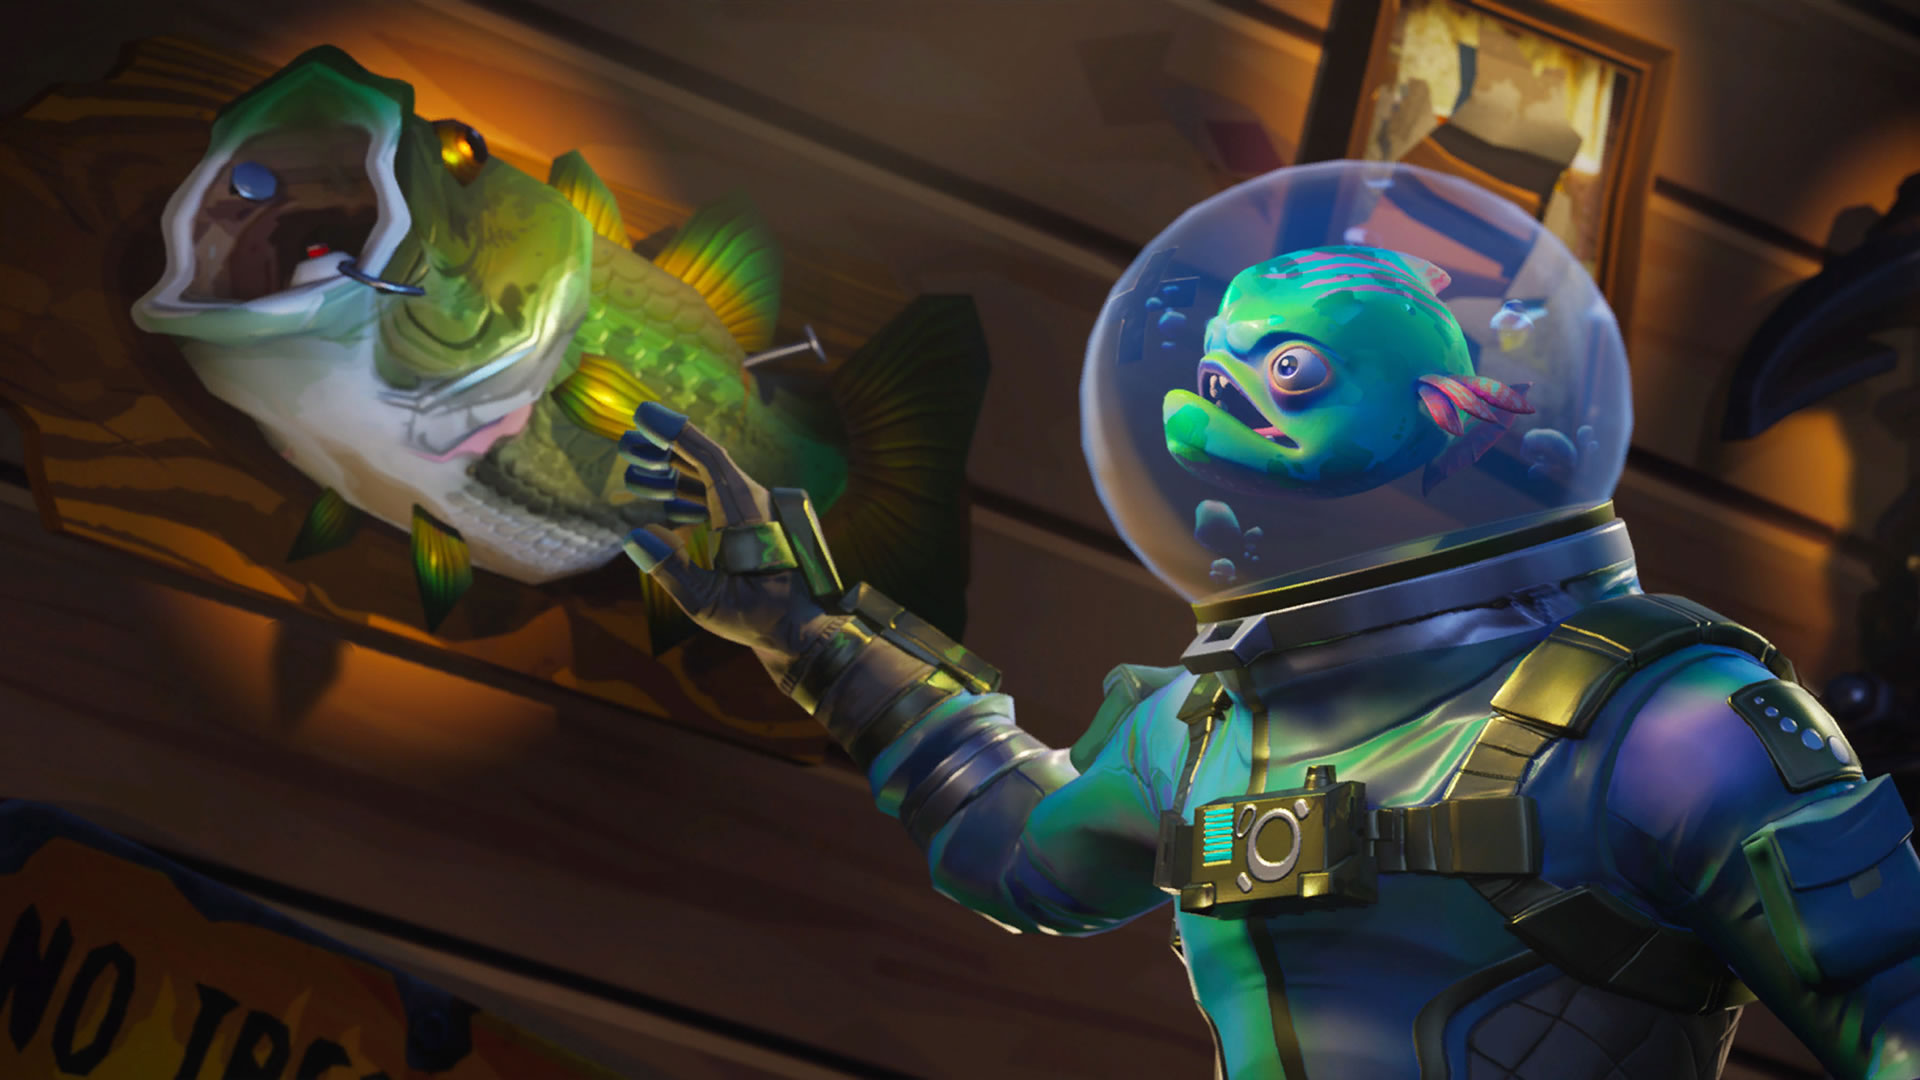 download wallpaper: Fortnite skin – Leviathan wallpaper